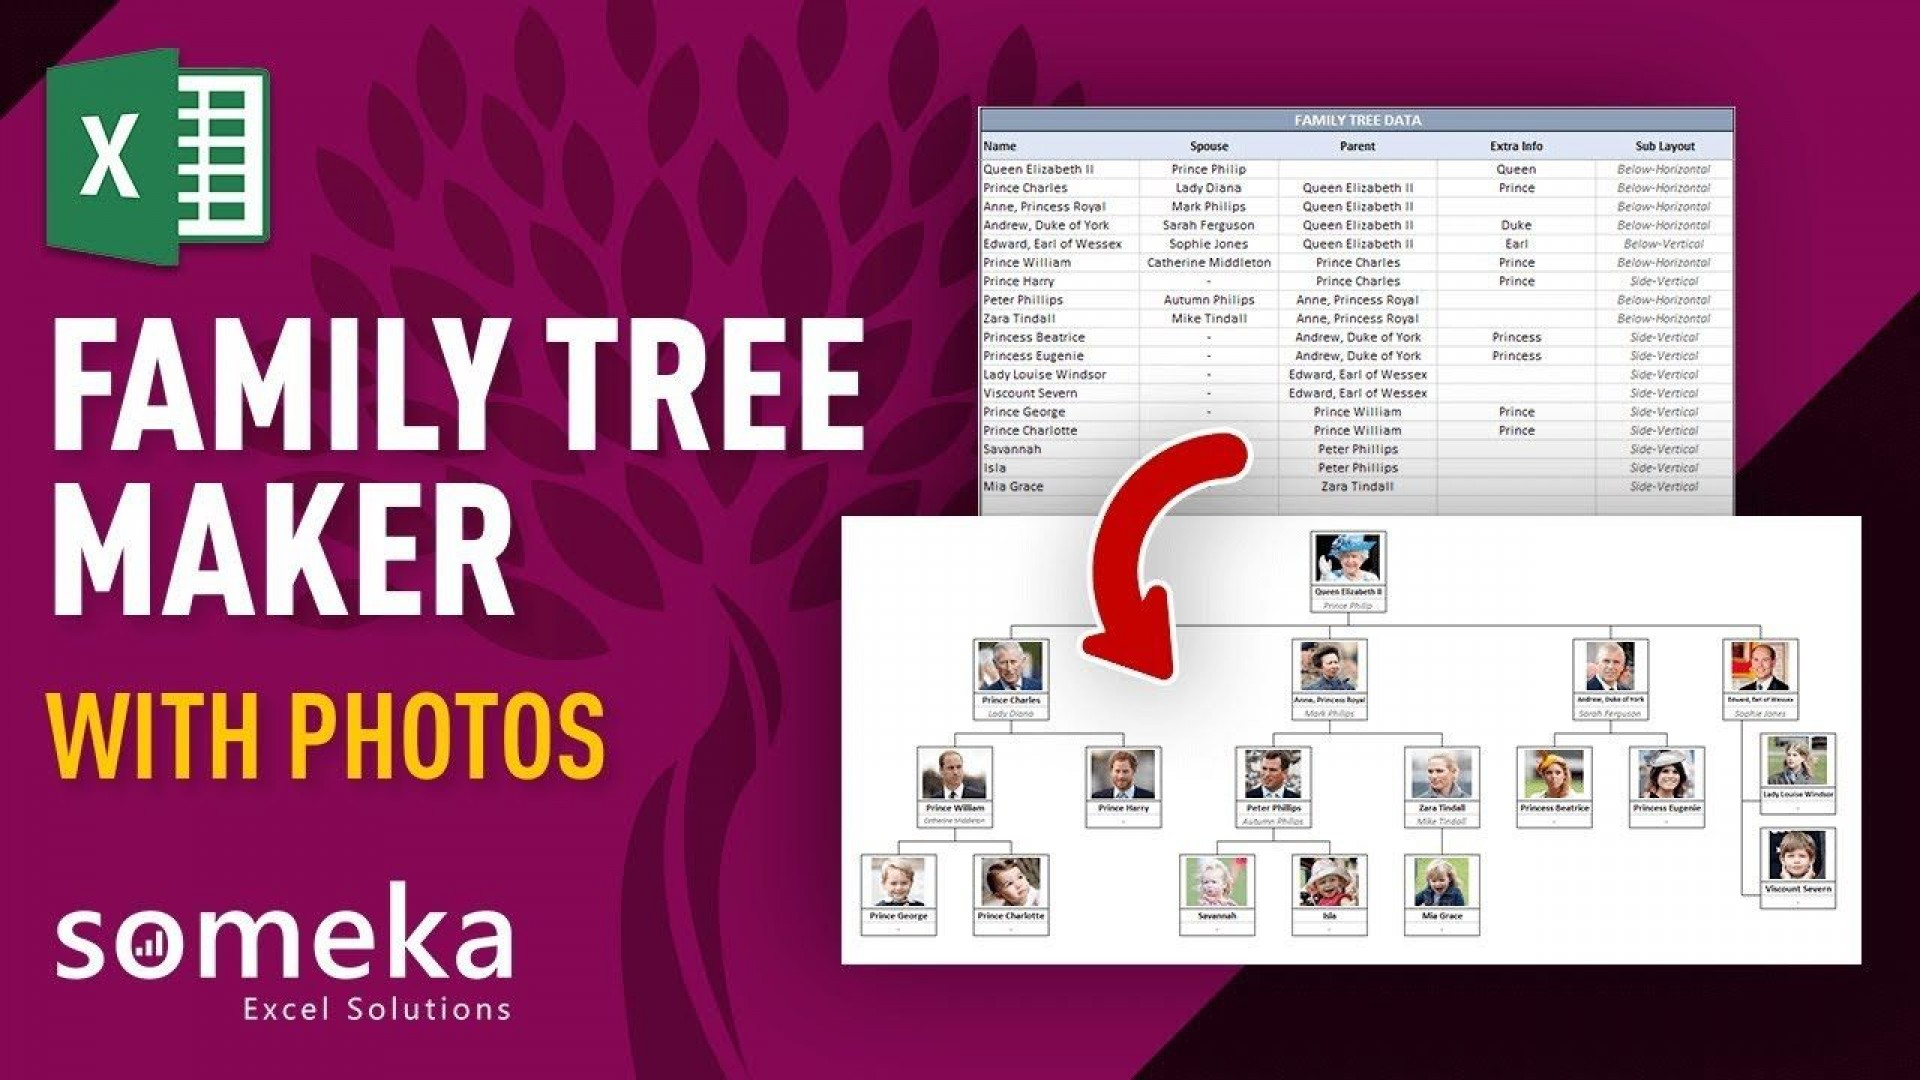 007 Phenomenal Excel Family Tree Template Photo  10 Generation Download Free Editable1920